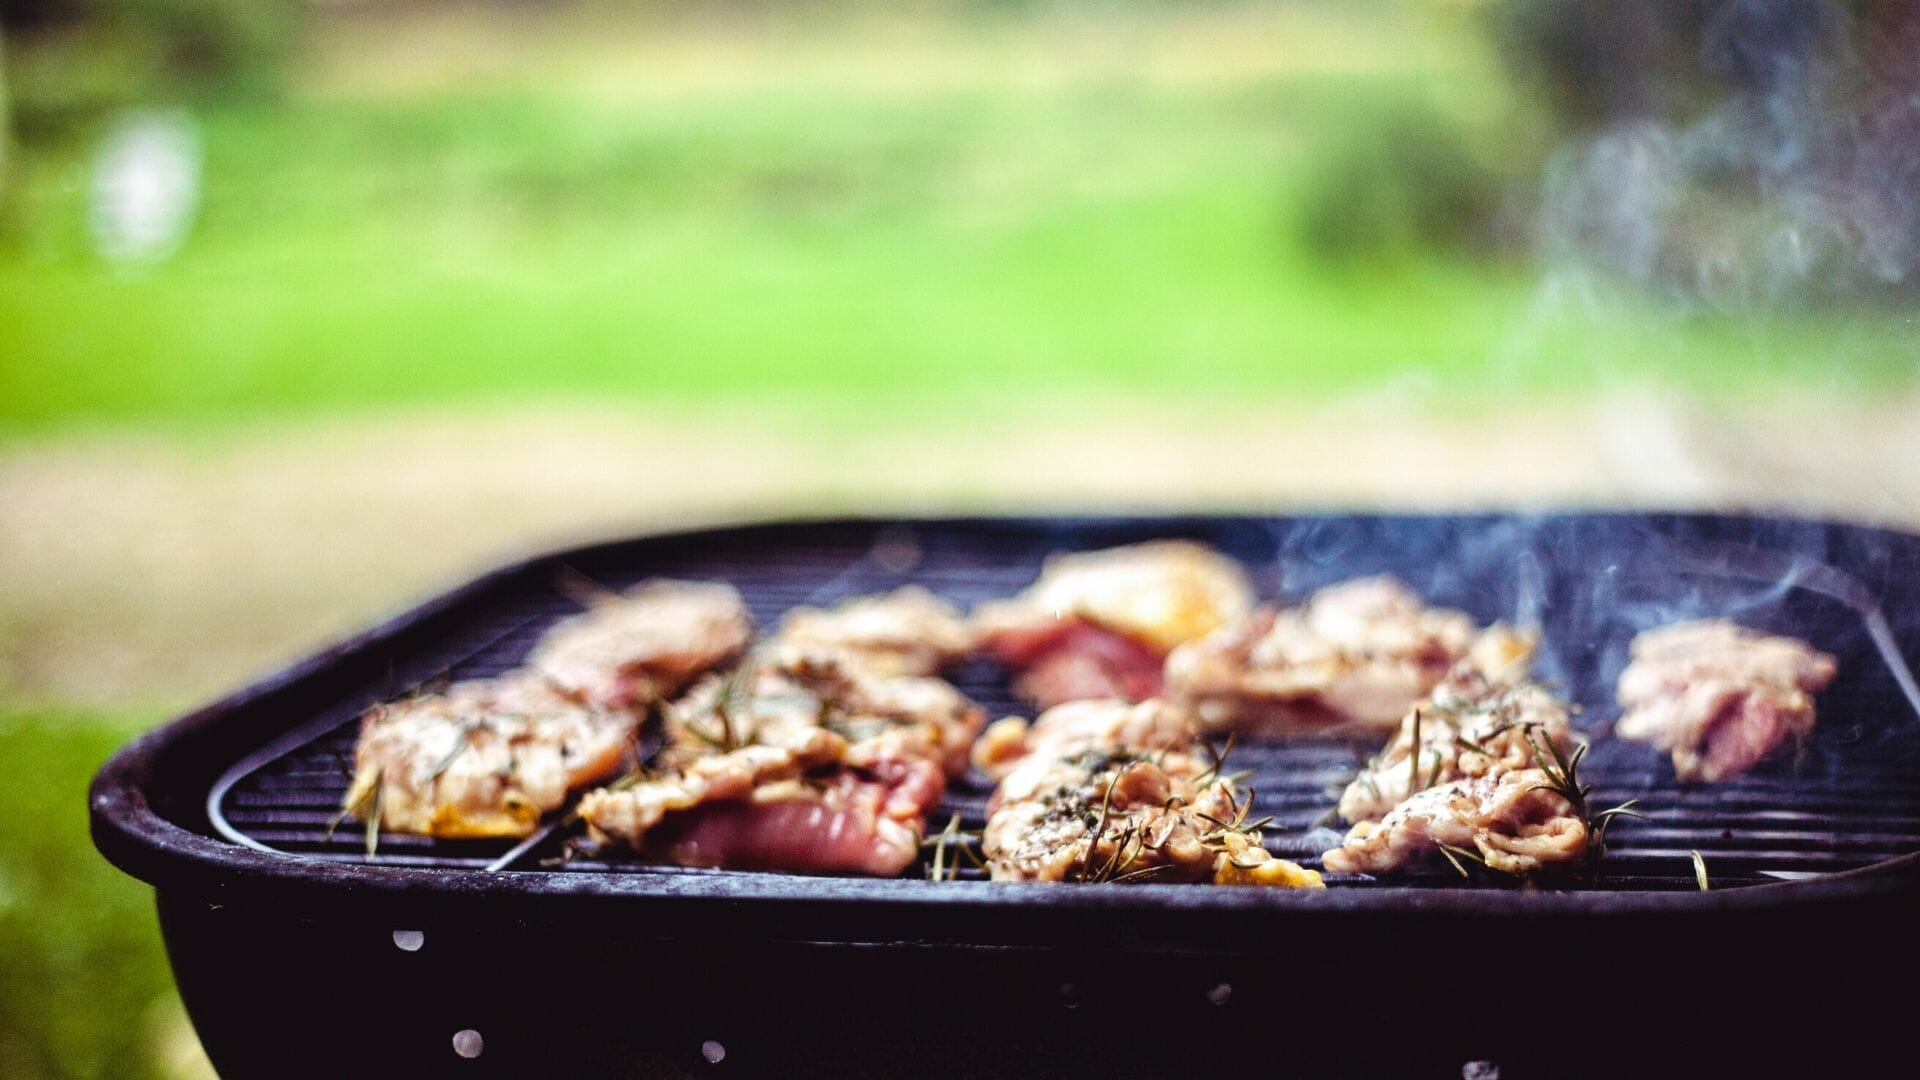 Seven Features that Make the Kamado Joe Classic II Charcoal Grill Great